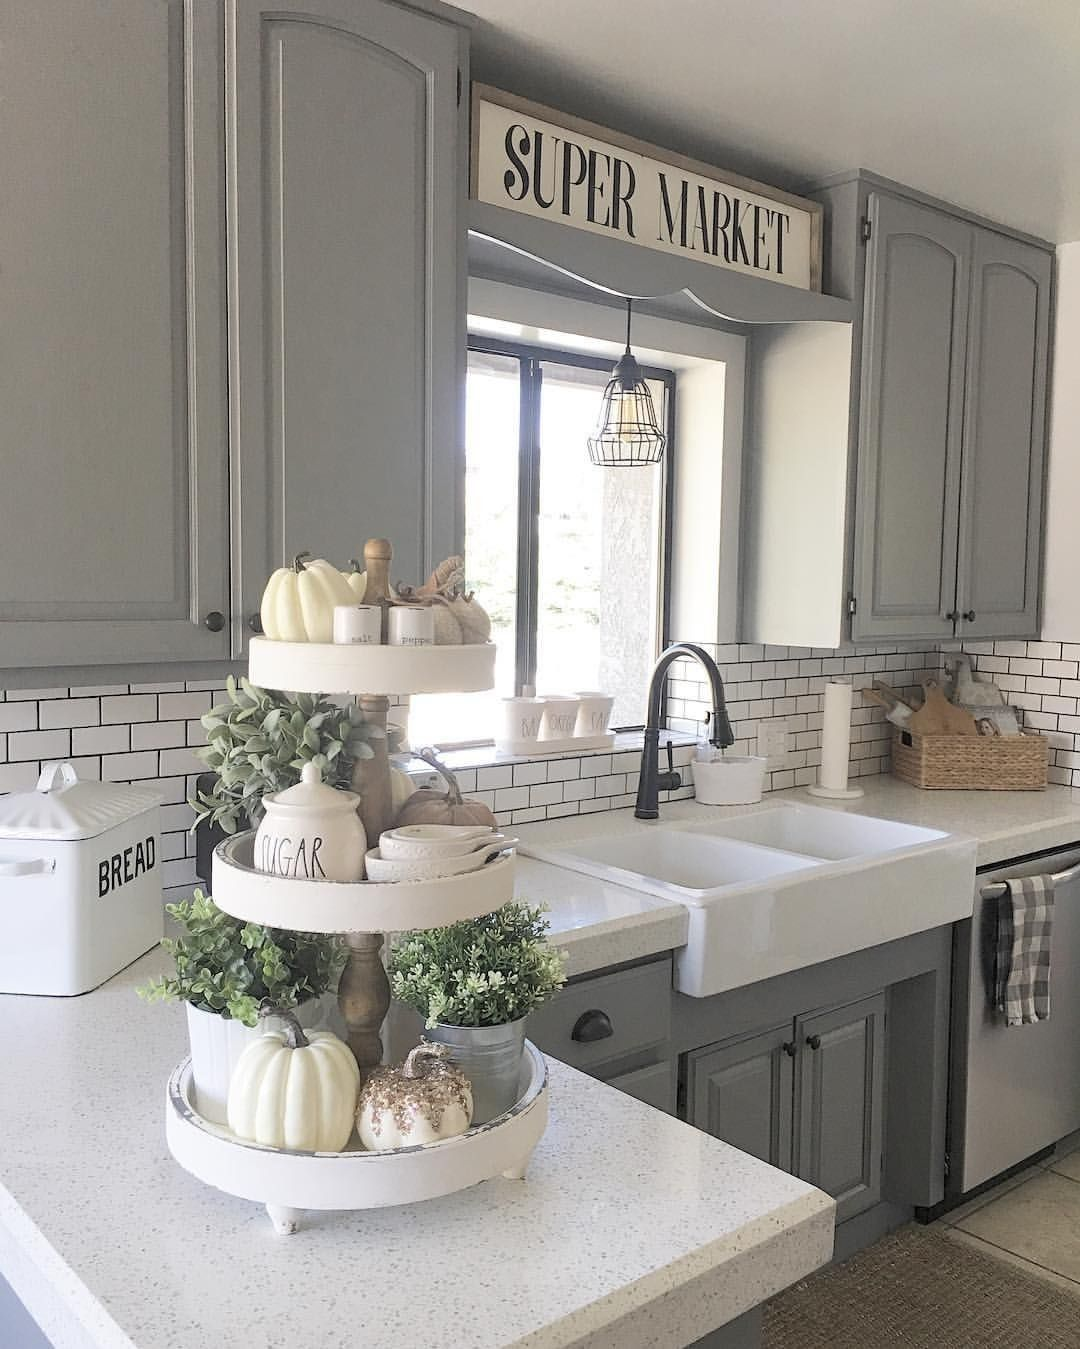 Open Kitchen Cabinet Decorating Ideas: House Updates In 2019